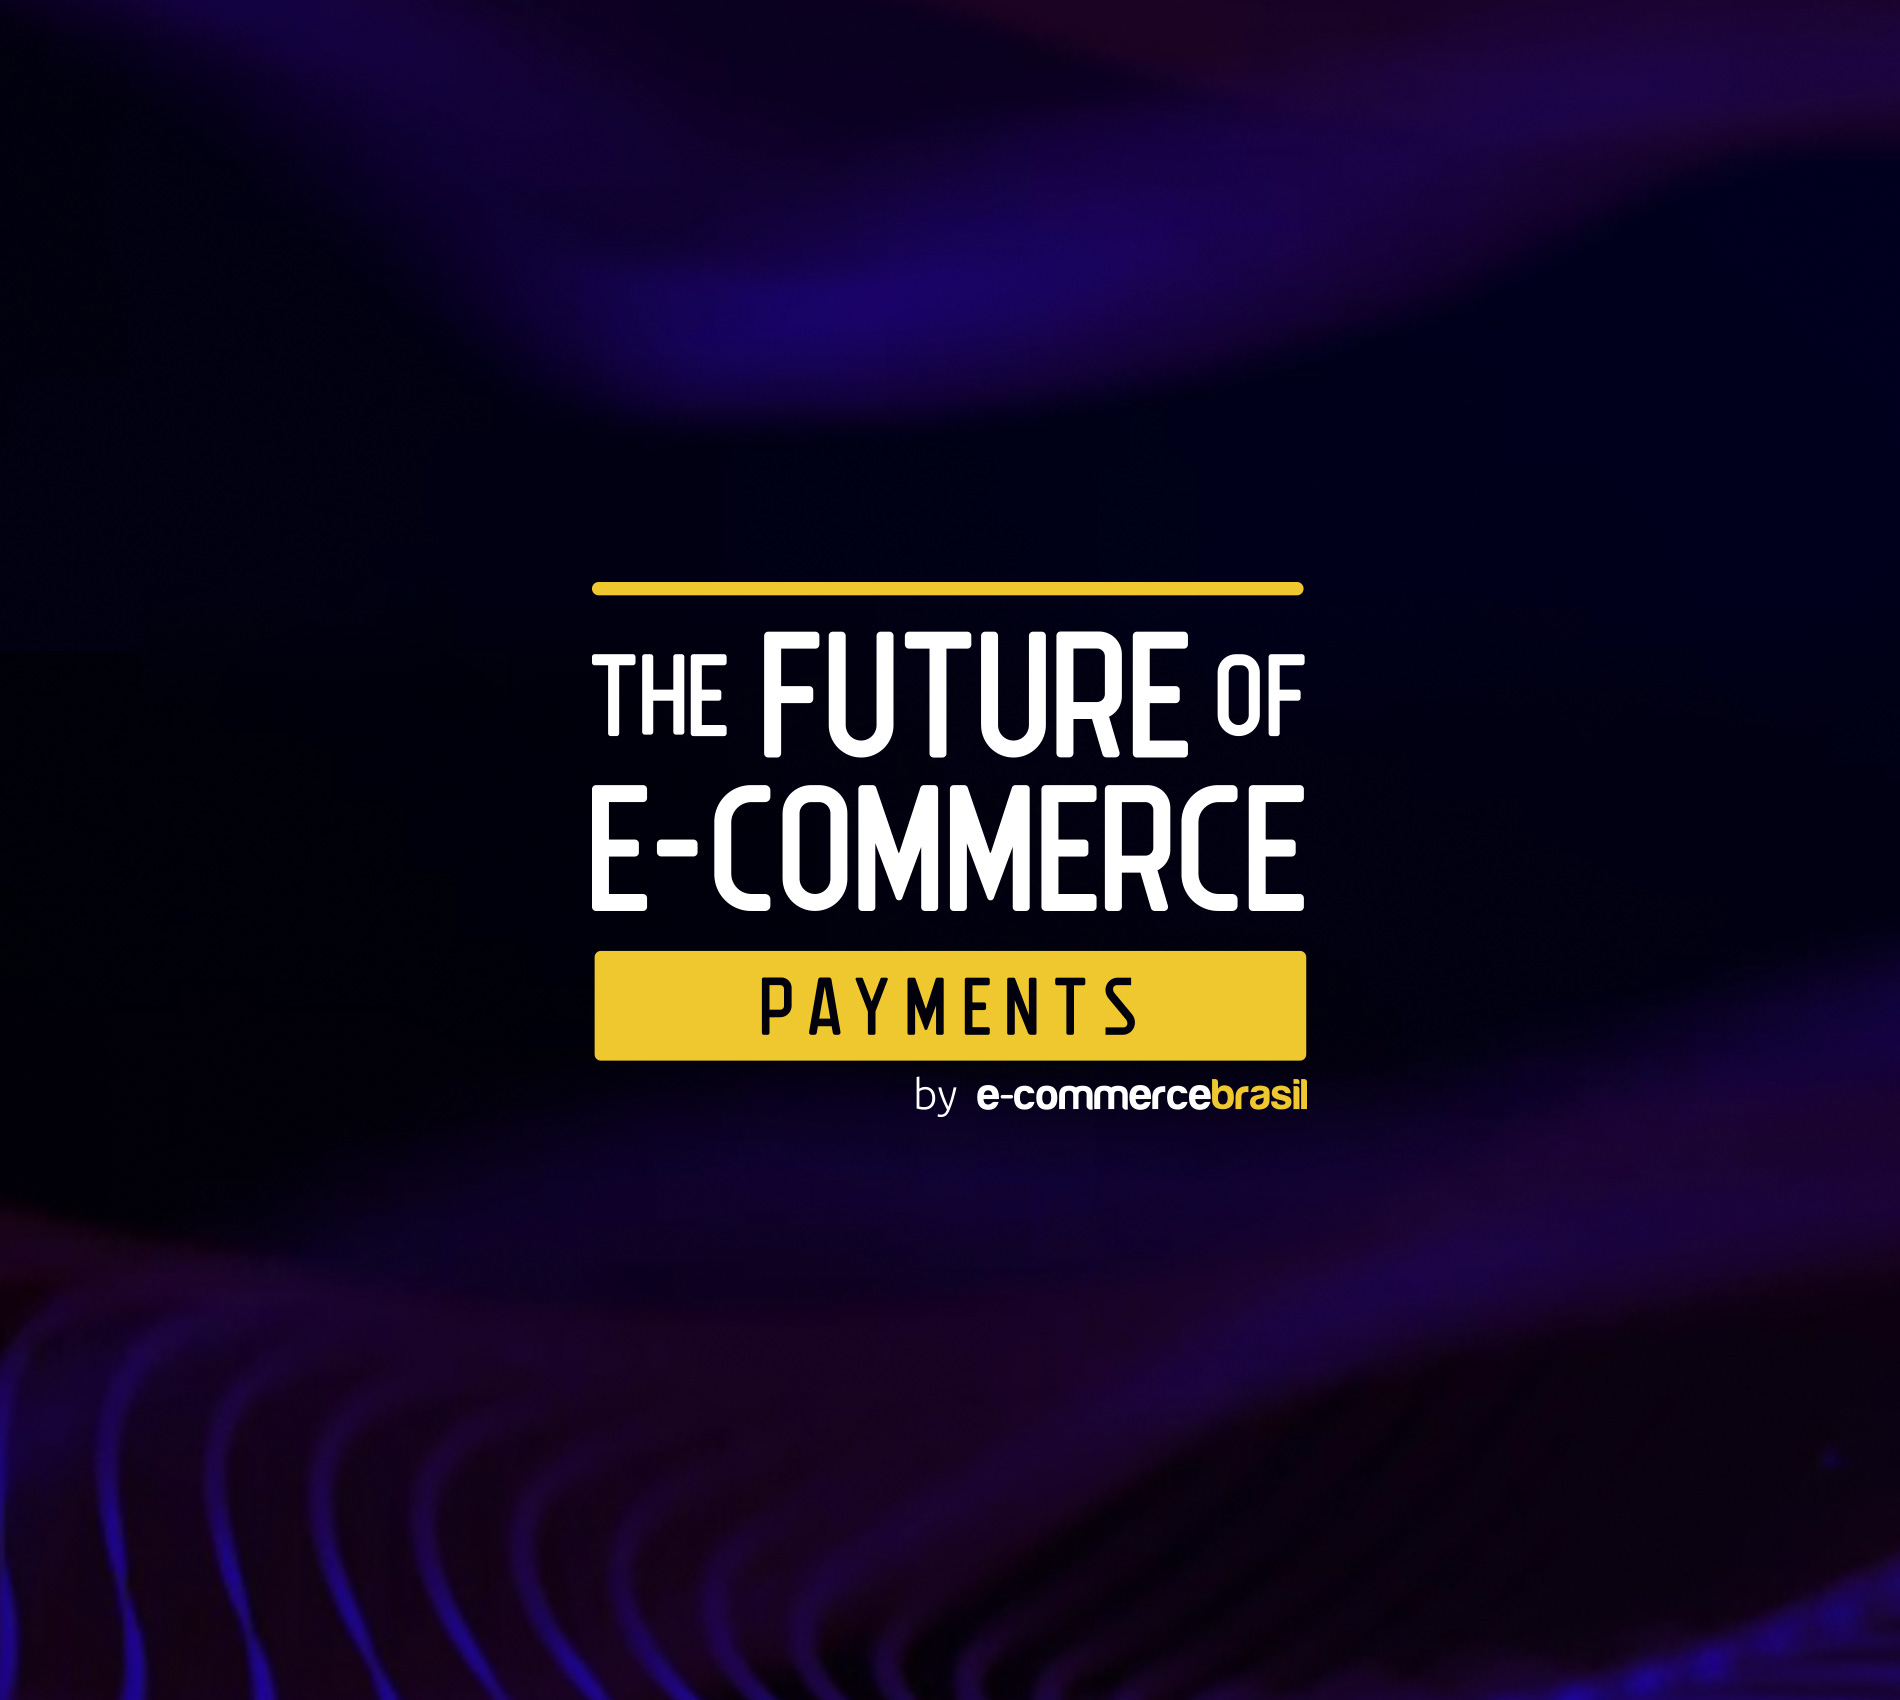 The Future of E-commerce – Payments Edition 2020